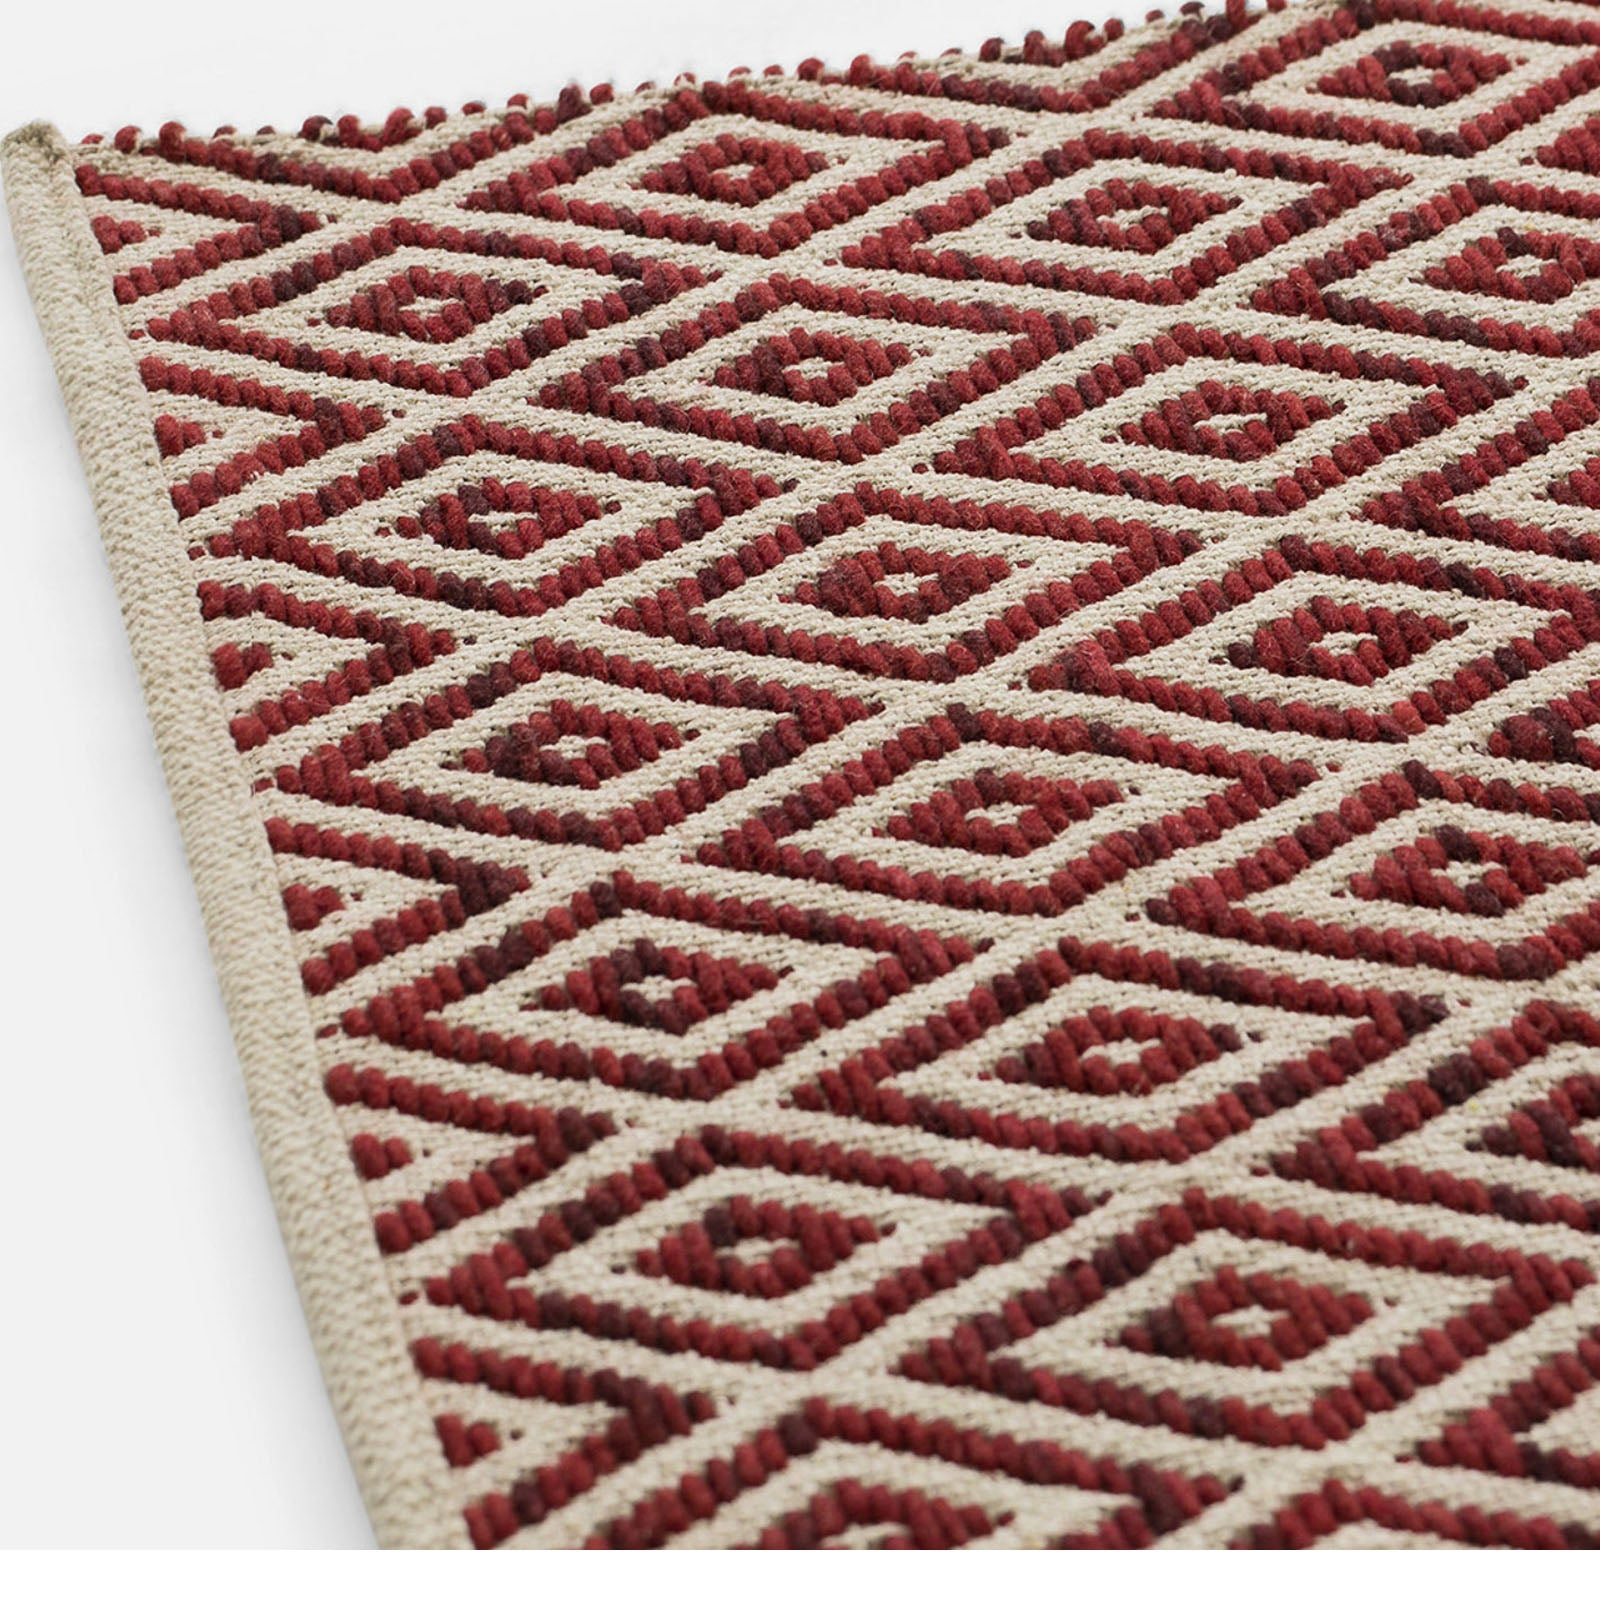 60x90 cm HANDMADE WOOL rug Caterina-Red-XS -  60x90 سم صوف صناعة يدوية - Shop Online Furniture and Home Decor Store in Dubai, UAE at ebarza